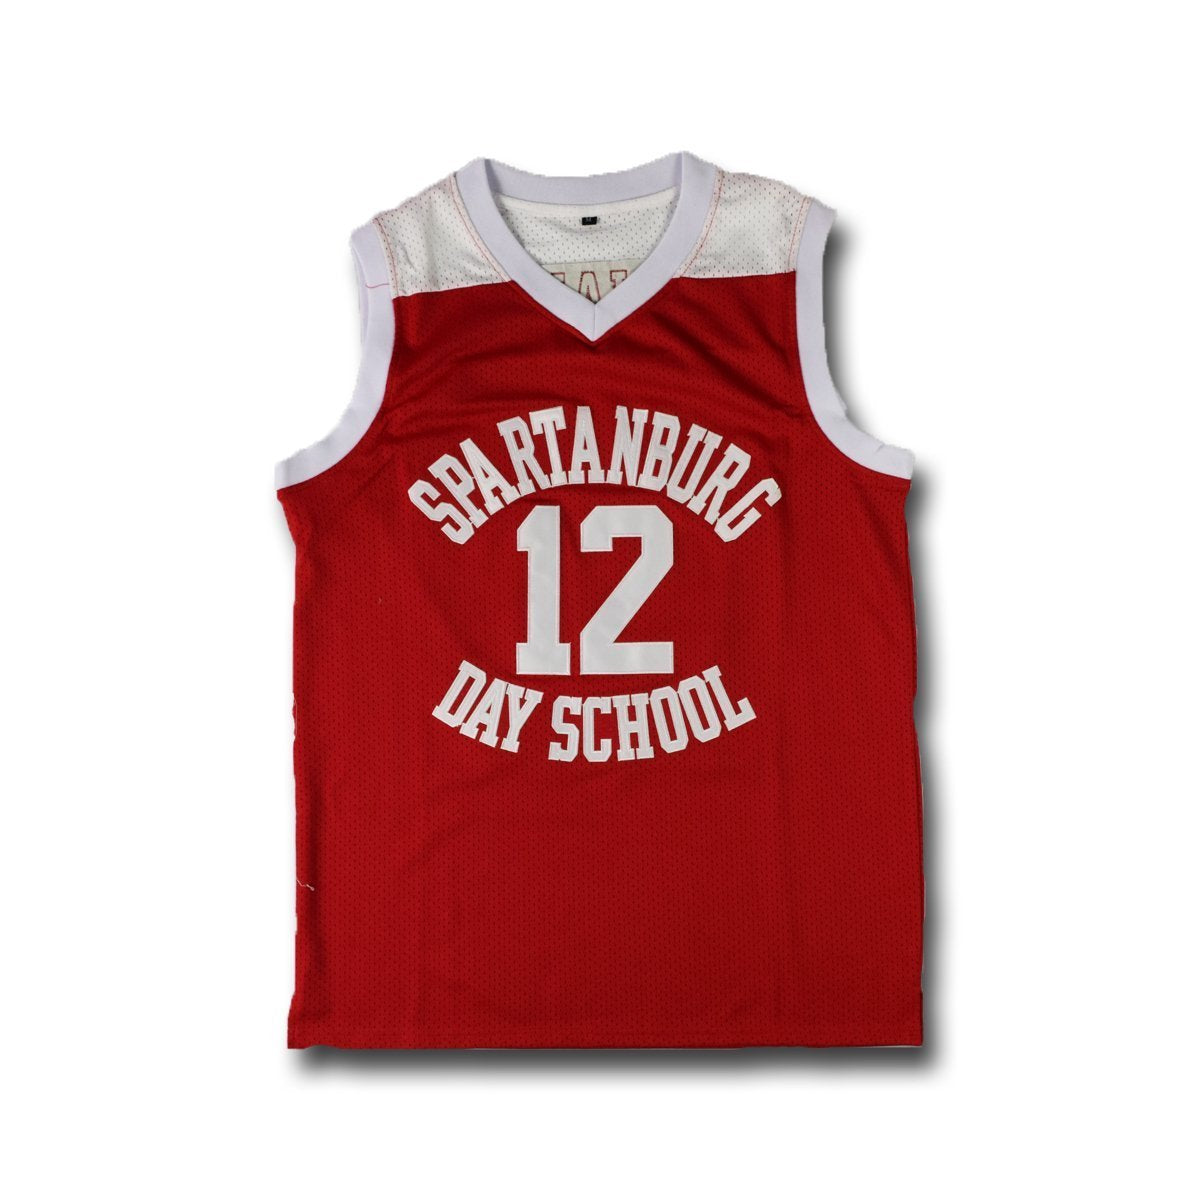 ZION WILLIAMSON #12 SPARTANBURG DAY SCHOOL JERSEY